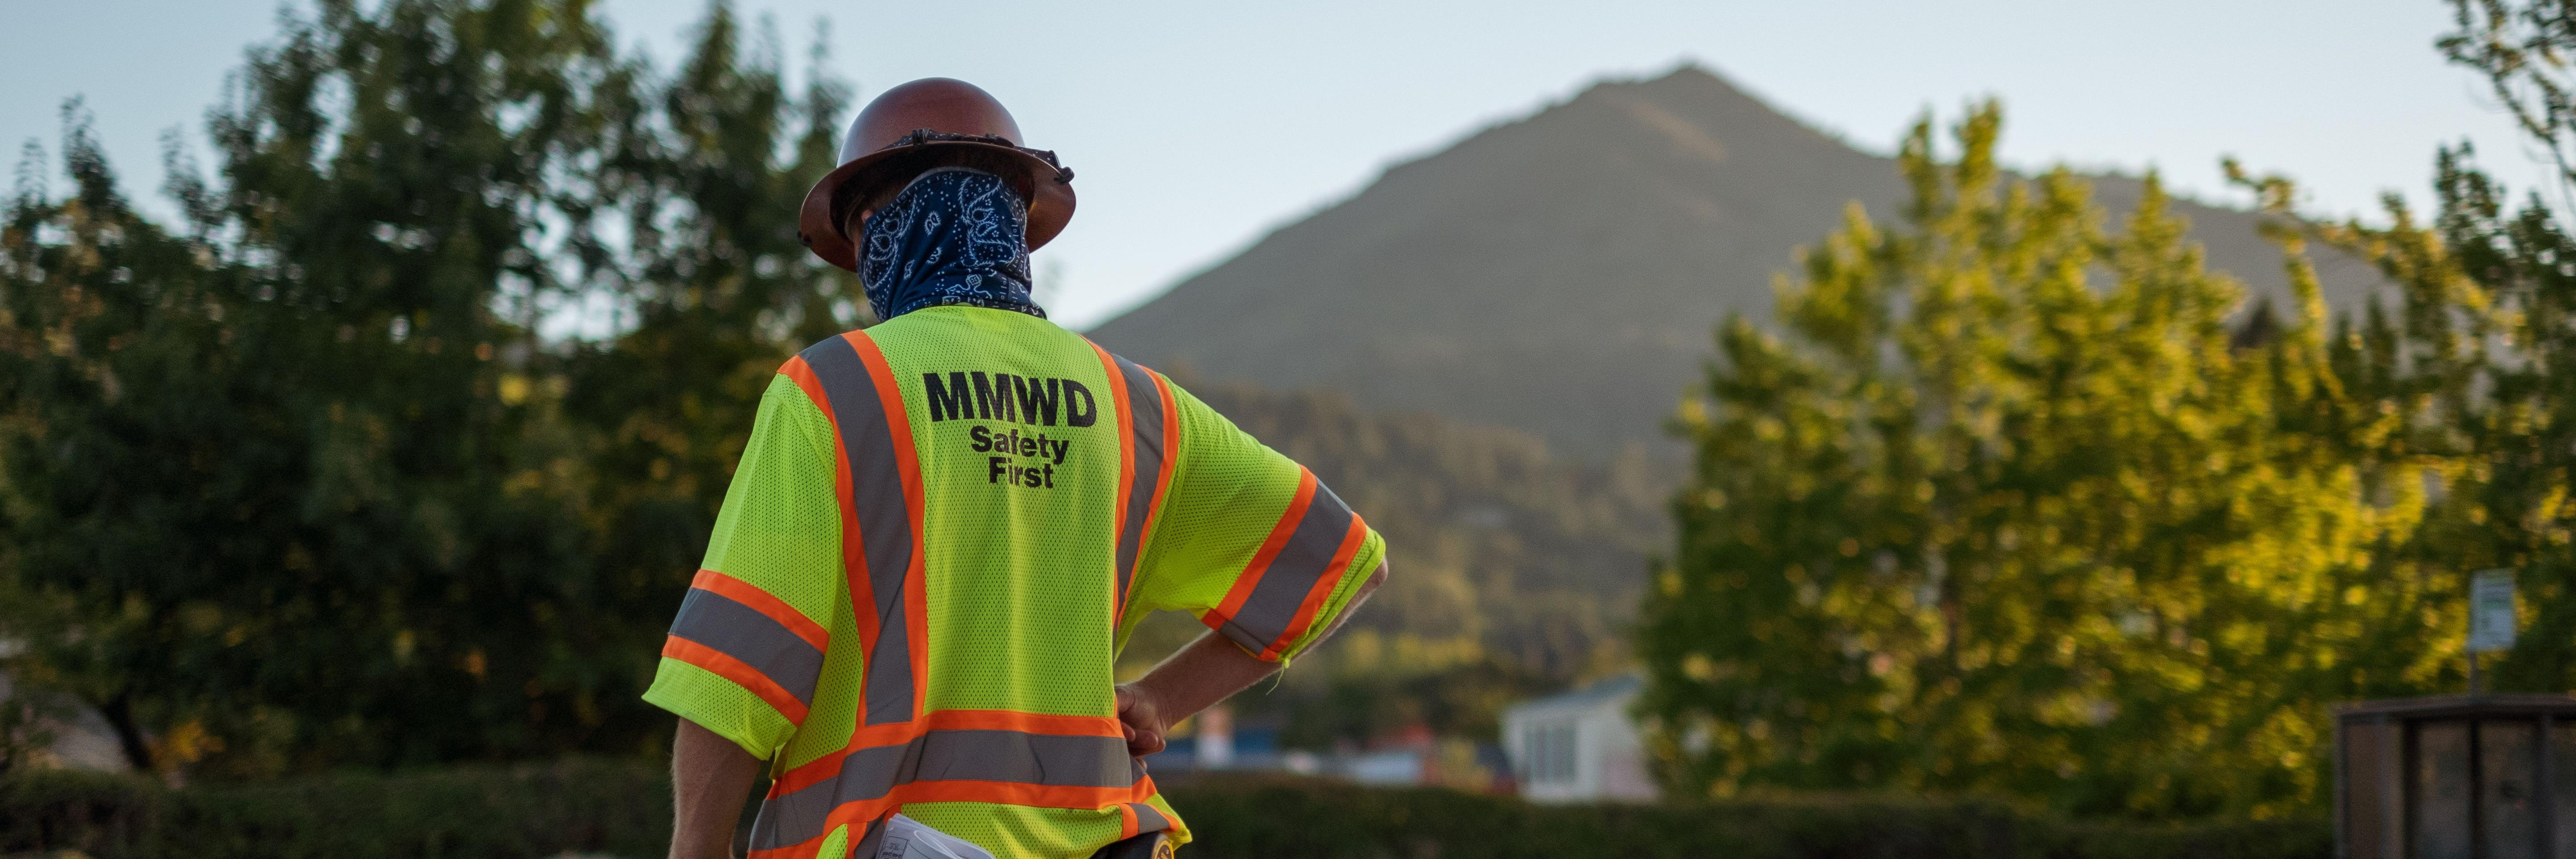 Marin Water employee with view of Mt. Tam in the background.